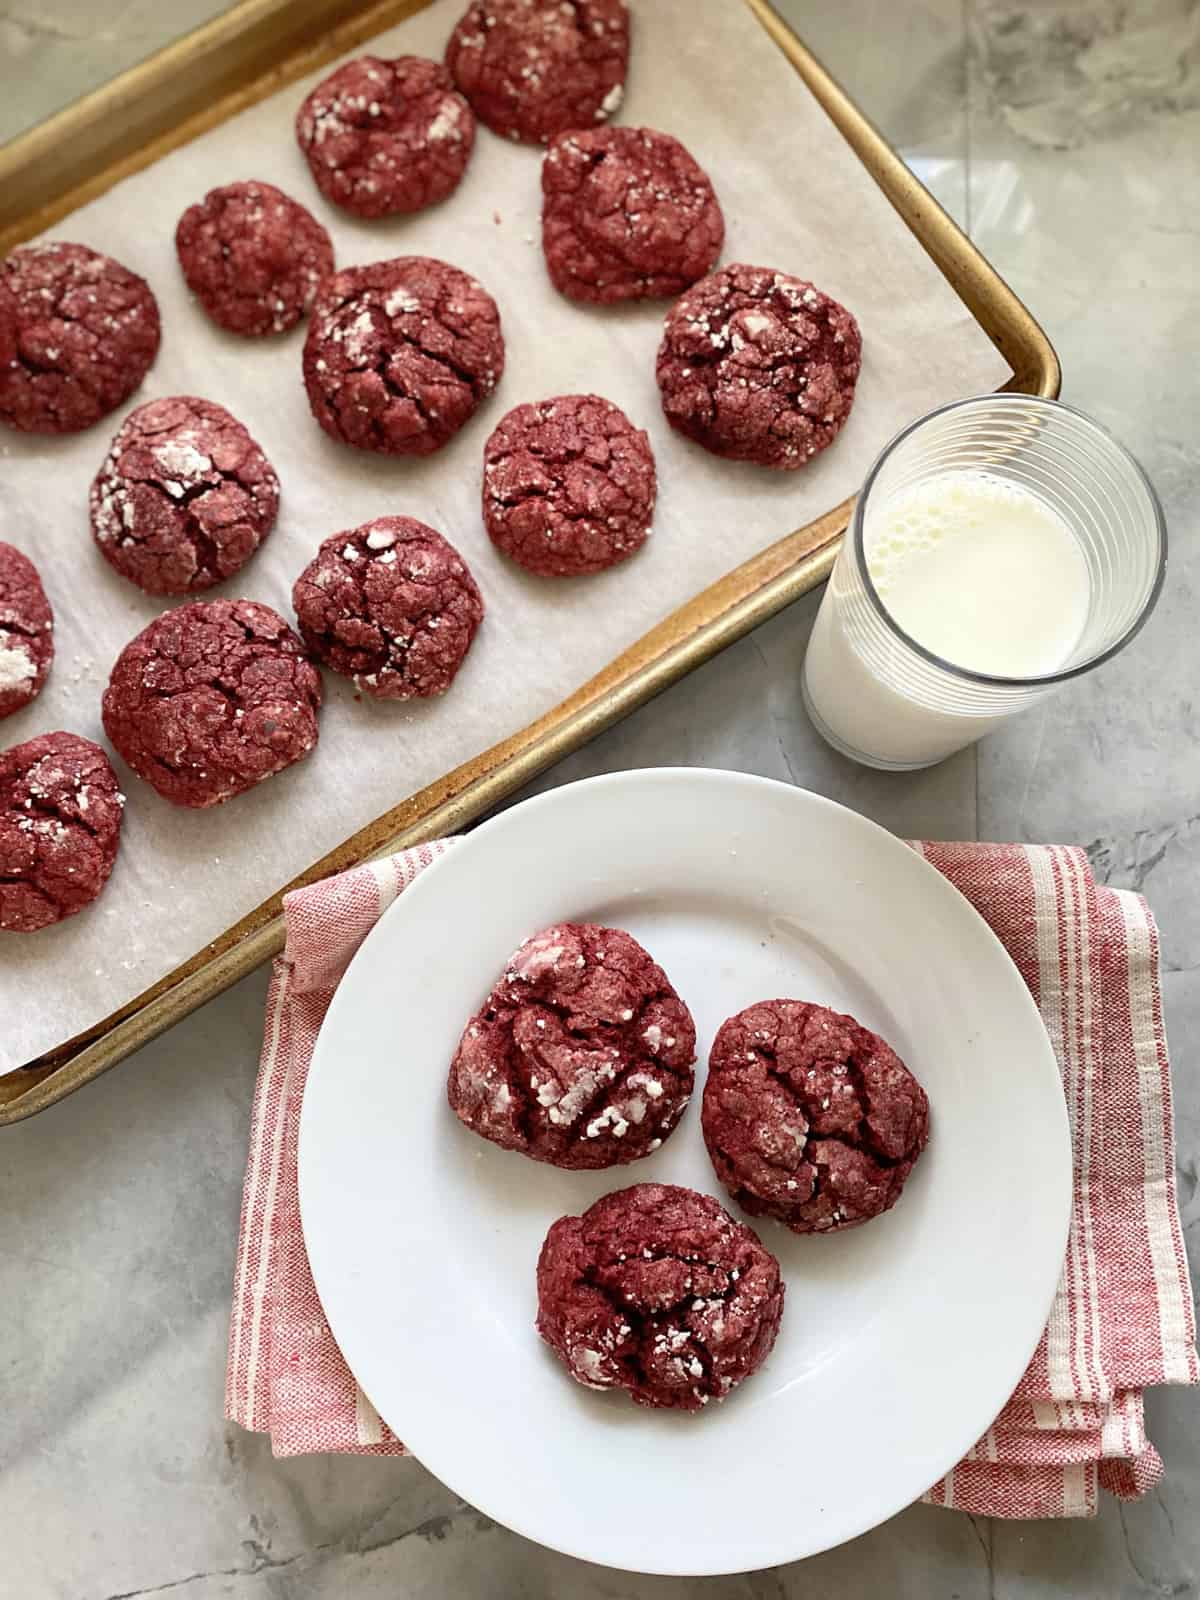 Top view of a baking sheet and white plate filled with red cookies.